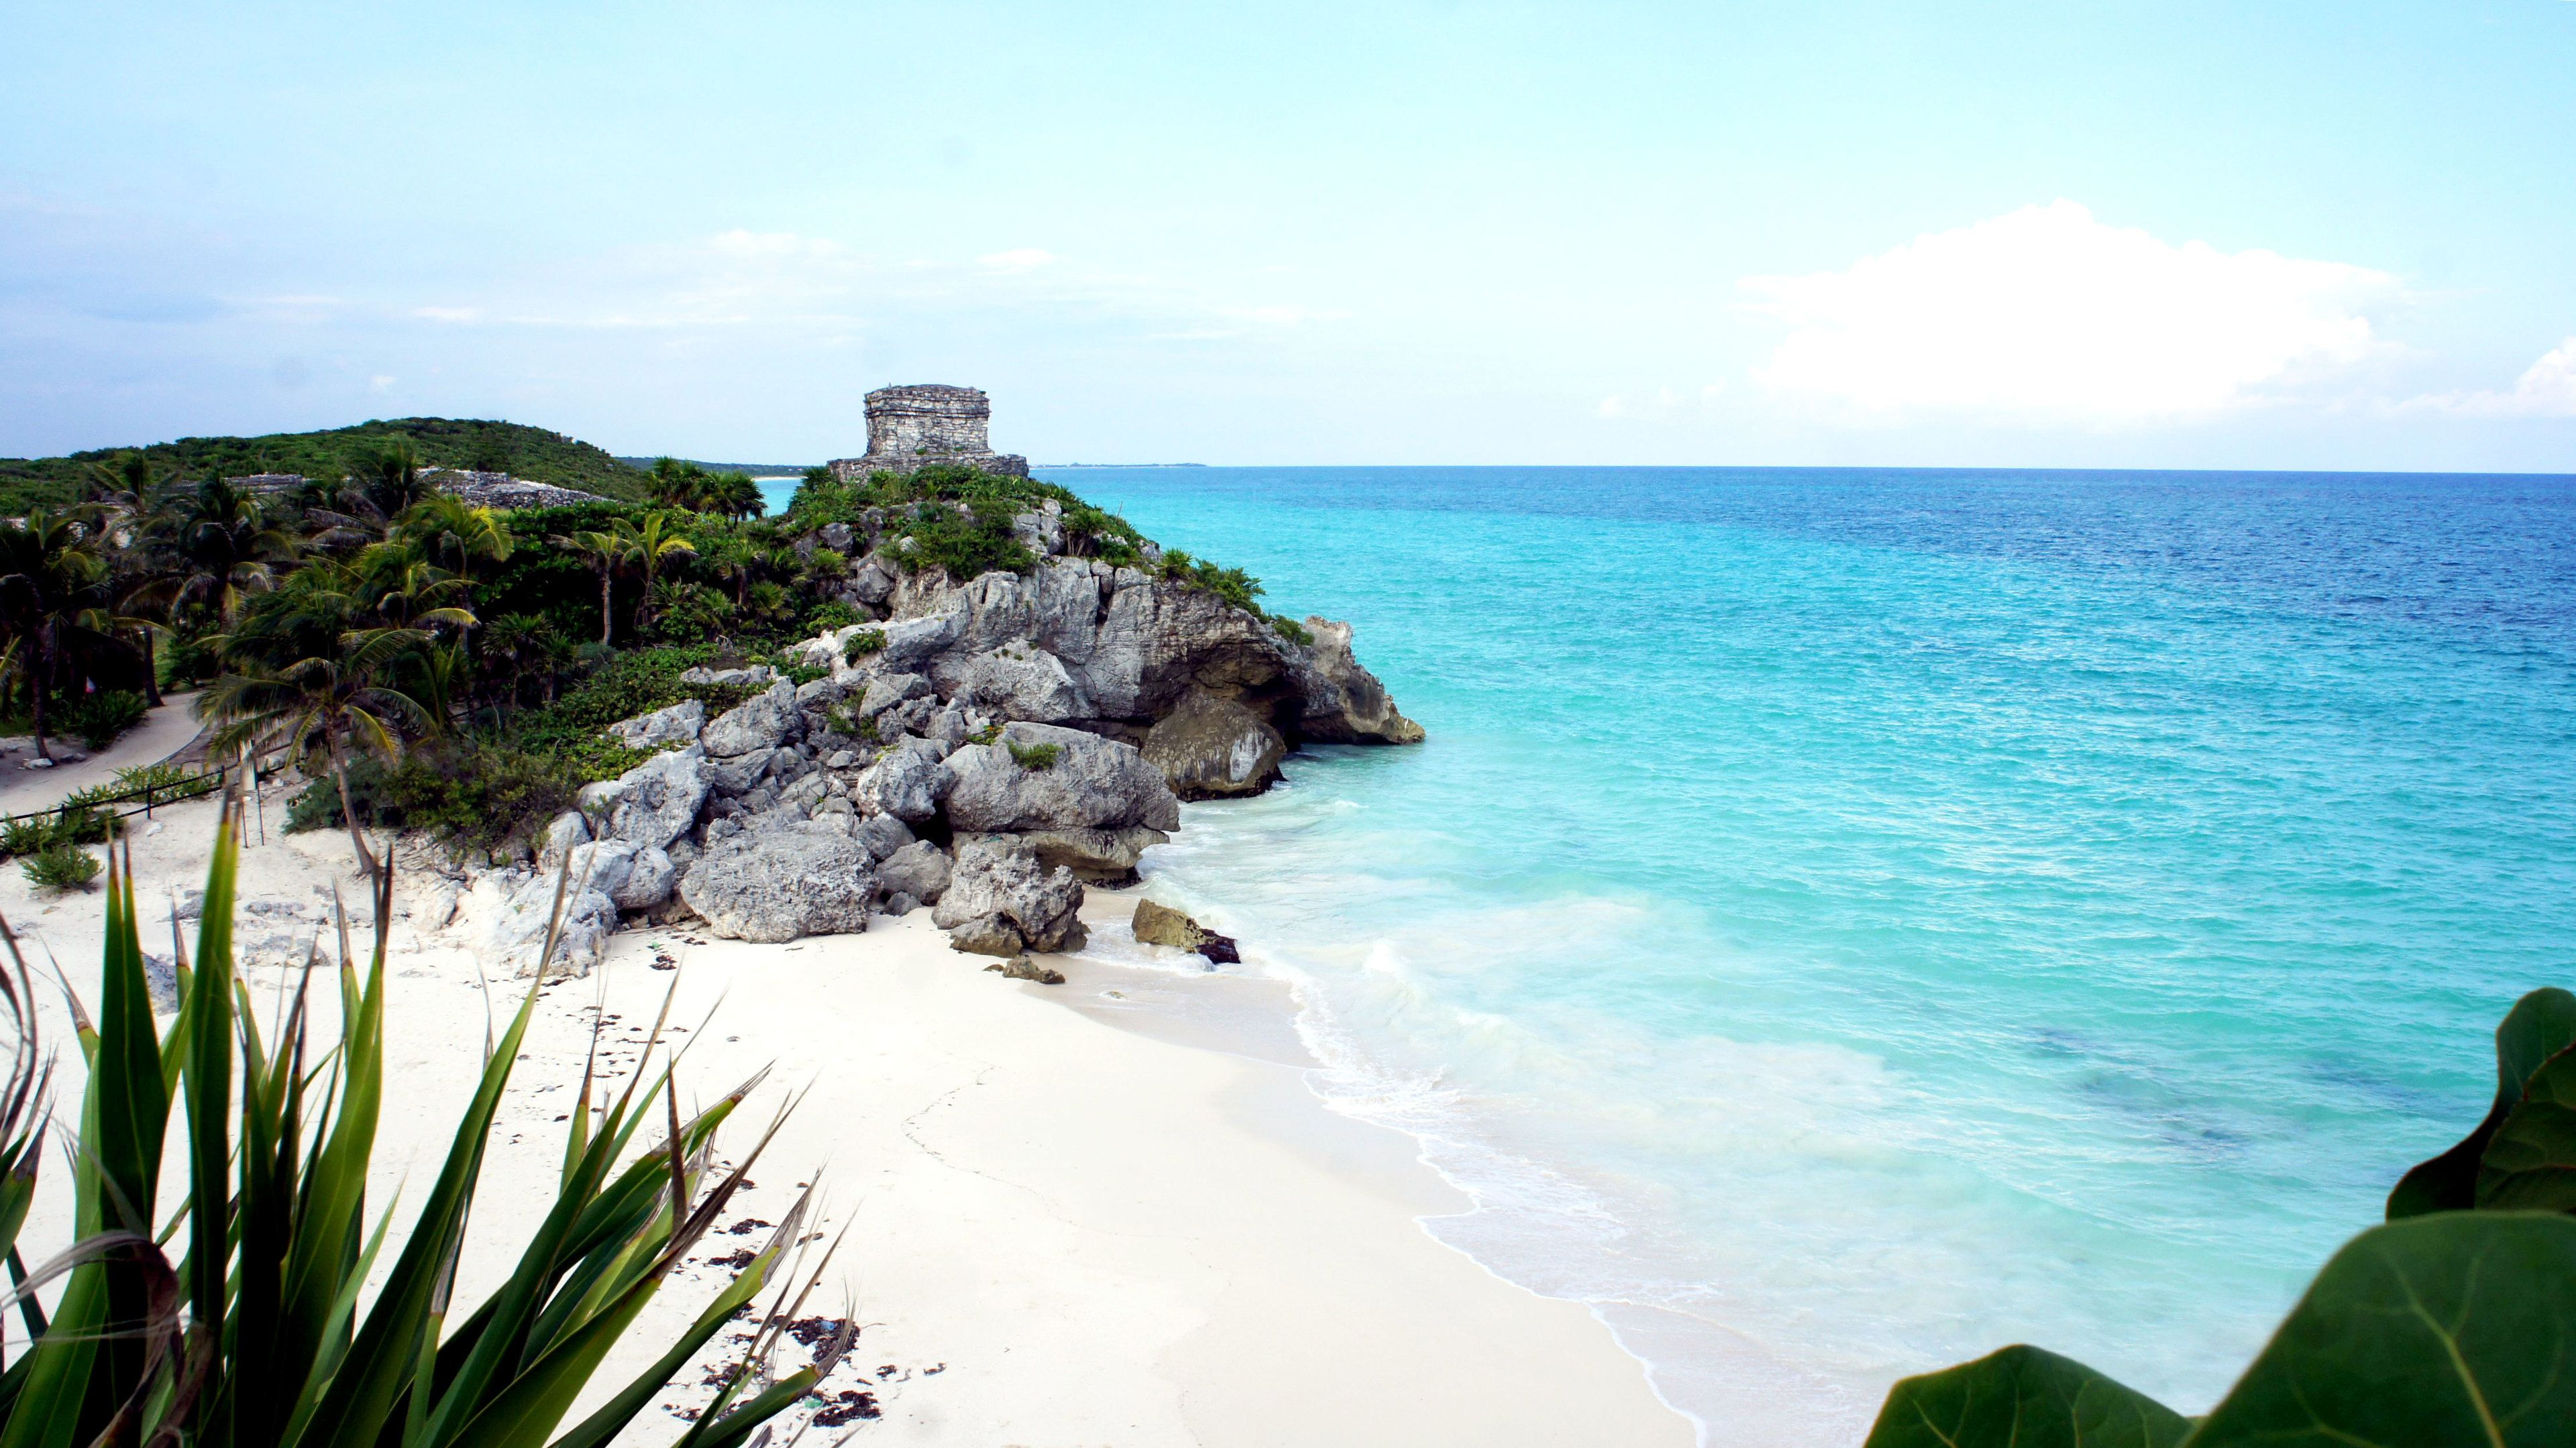 Building ruins near beach and coast in Tulum